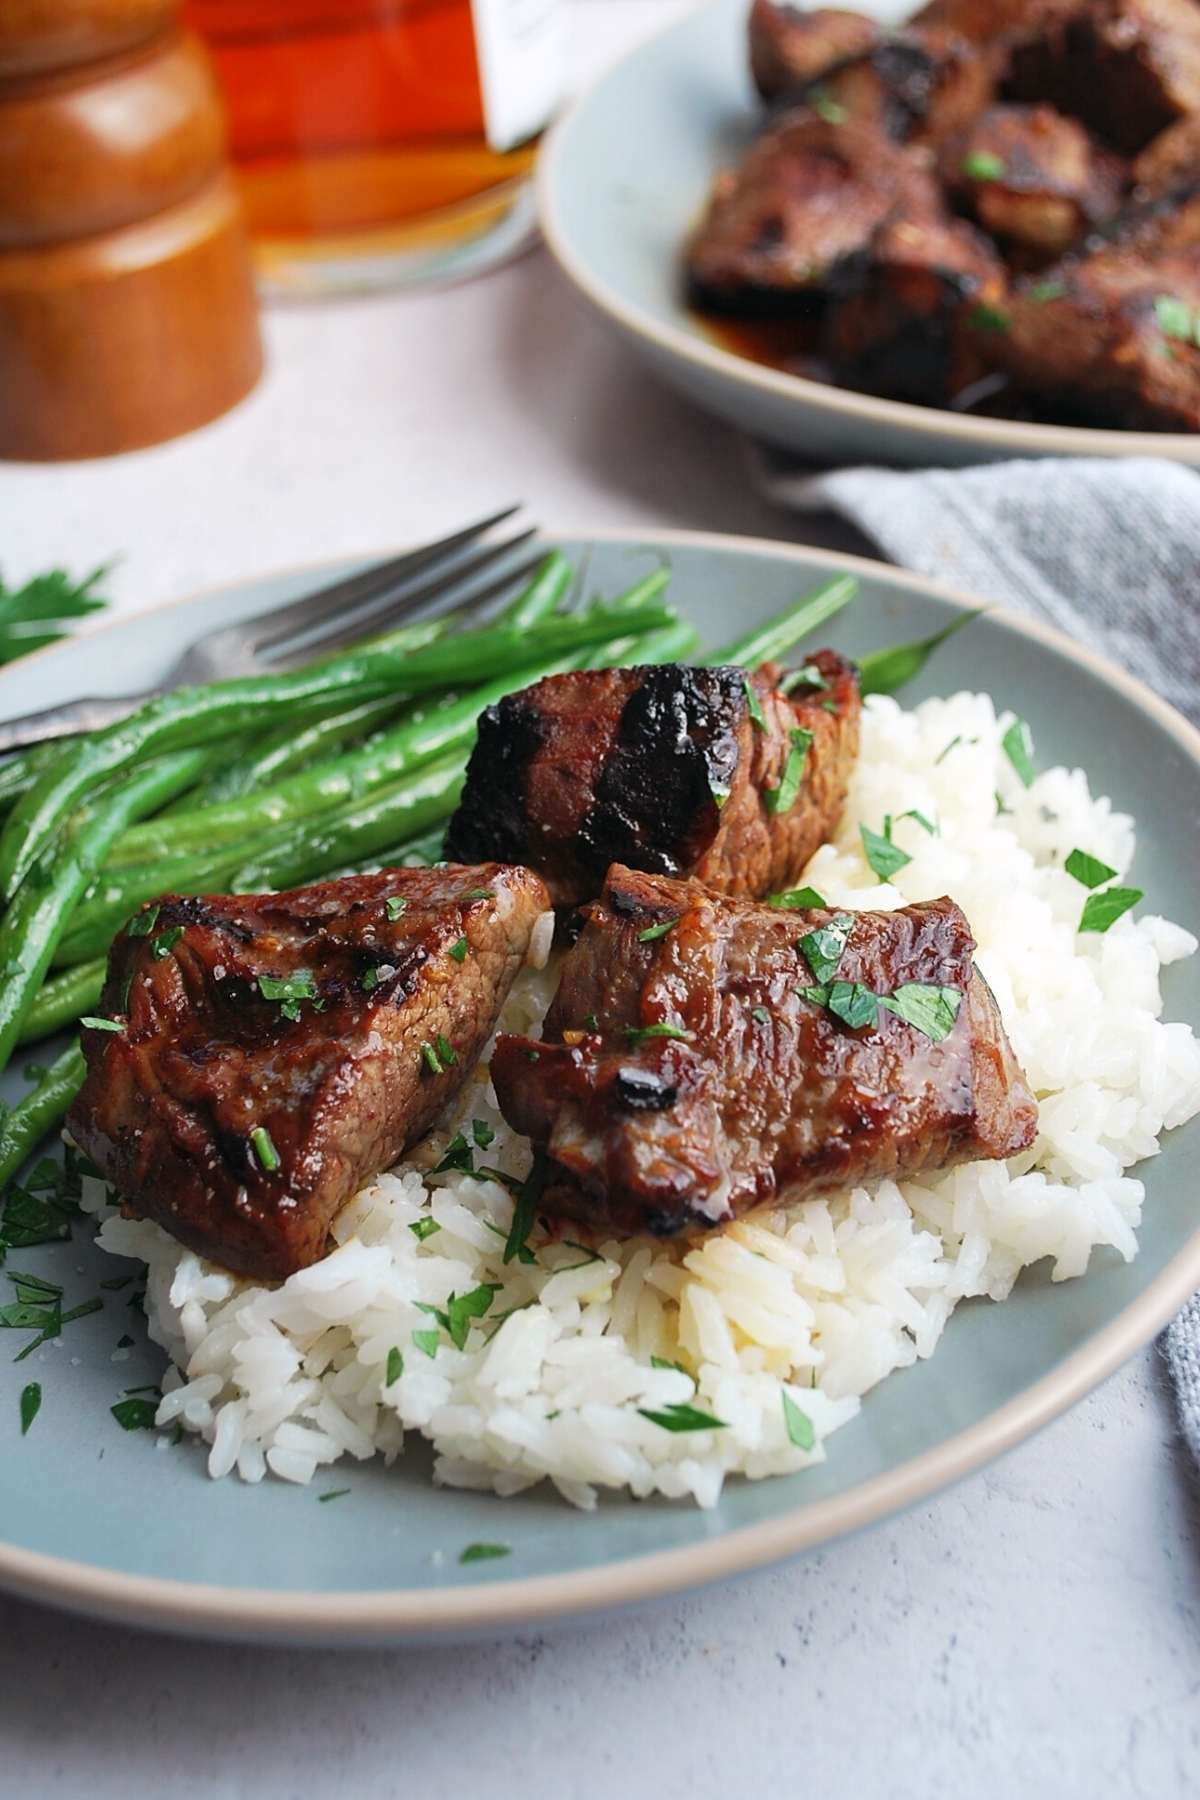 steak tips over a bed of rice with green beans